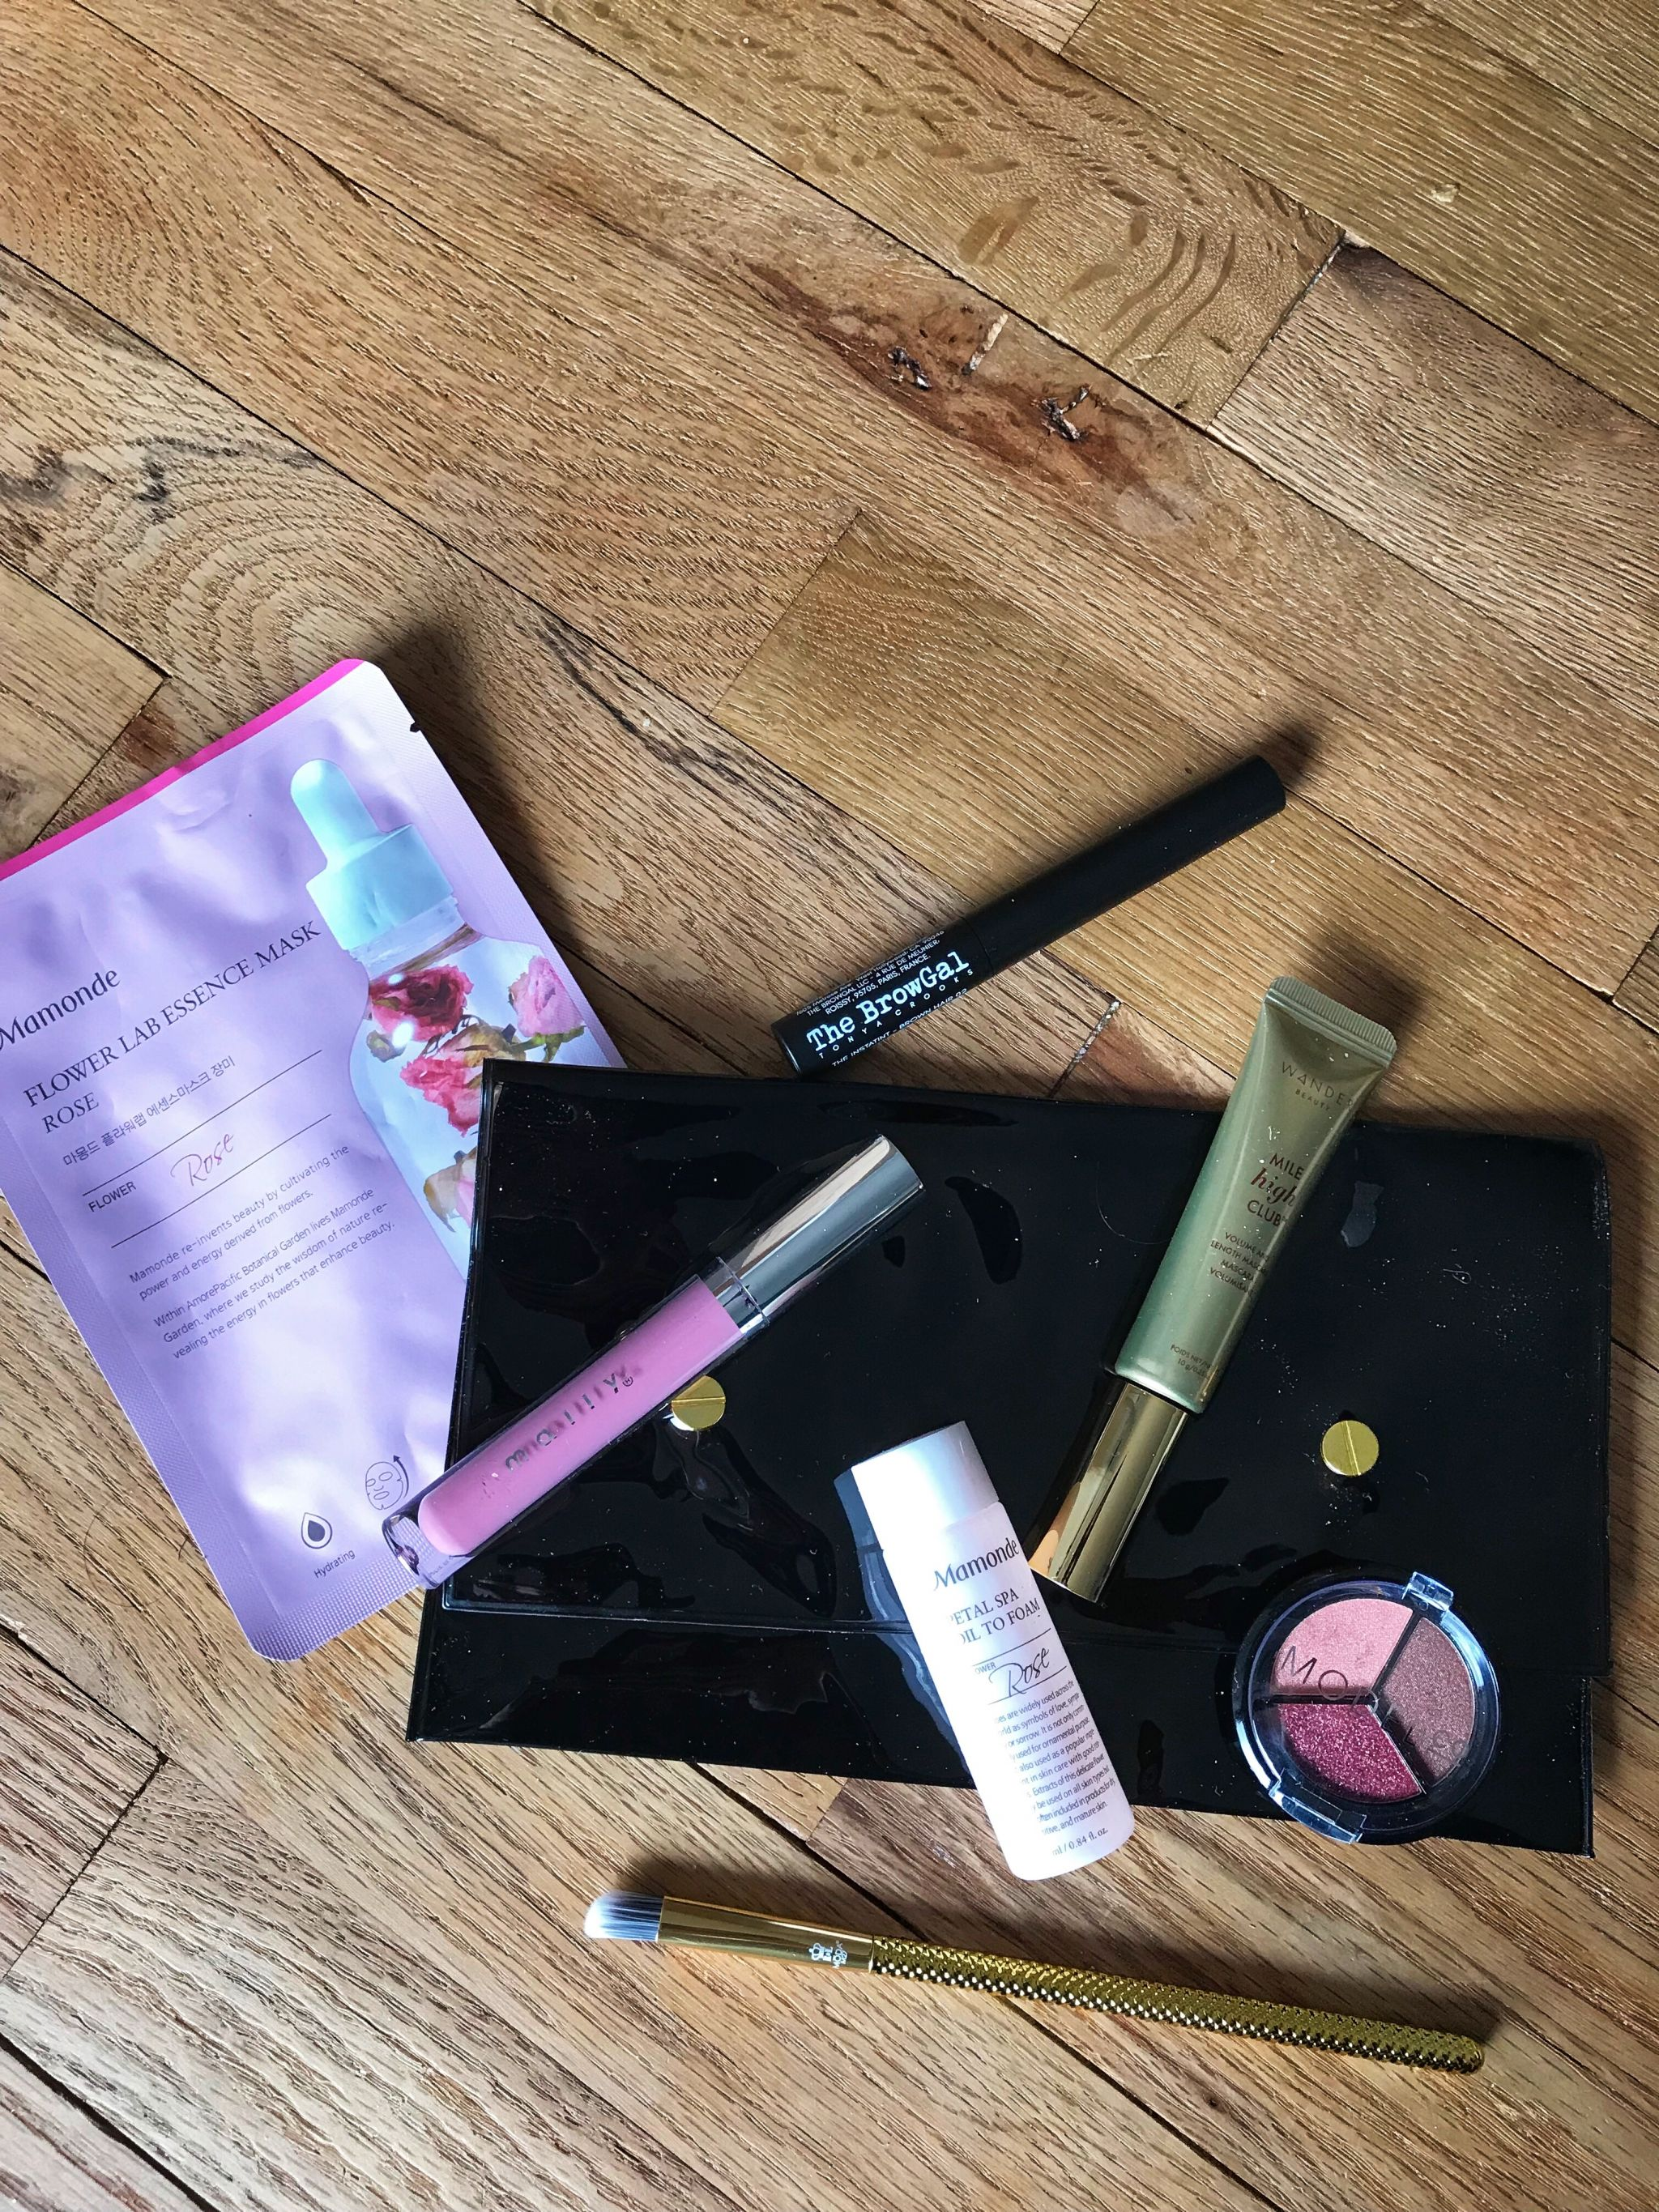 February Allure Beauty Box Review on JK Style